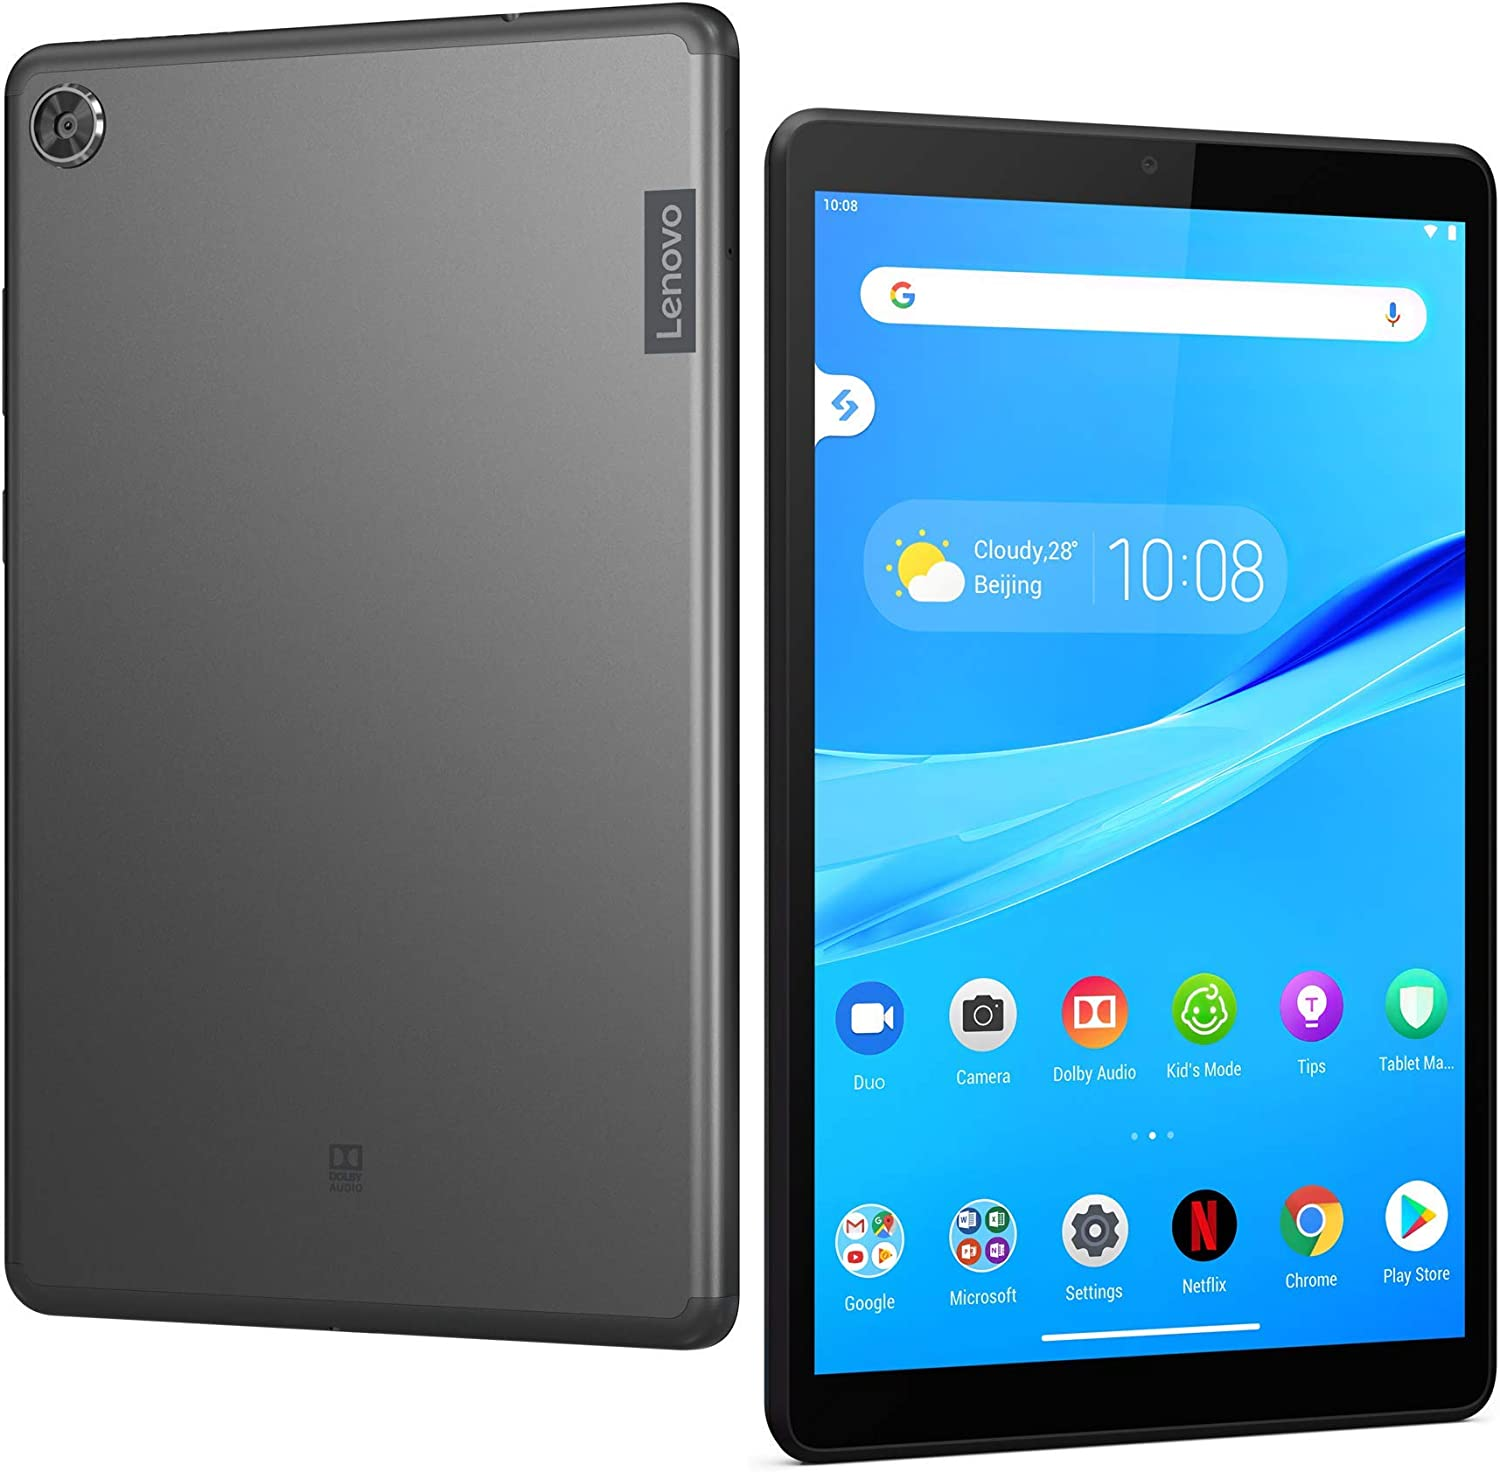 "Lenovo Tab M8 Tablet, 8"" HD Android Tablet, Quad-Core Processor, 2GHz, 32GB Storage, Full Metal Cover, Long Battery Life, Android 9 Pie, ZA5G0060US, Slate Black (Renewed)"